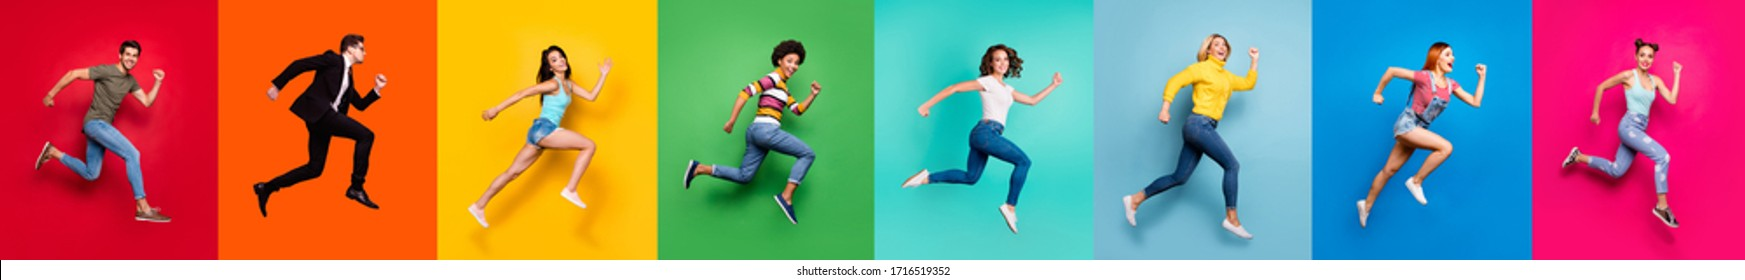 Shopping discount freedom inspiration concept. Panoramic photo collage of eight funny funky crazy motivated diverse shiny emotional energetic group human person running to dream isolated background